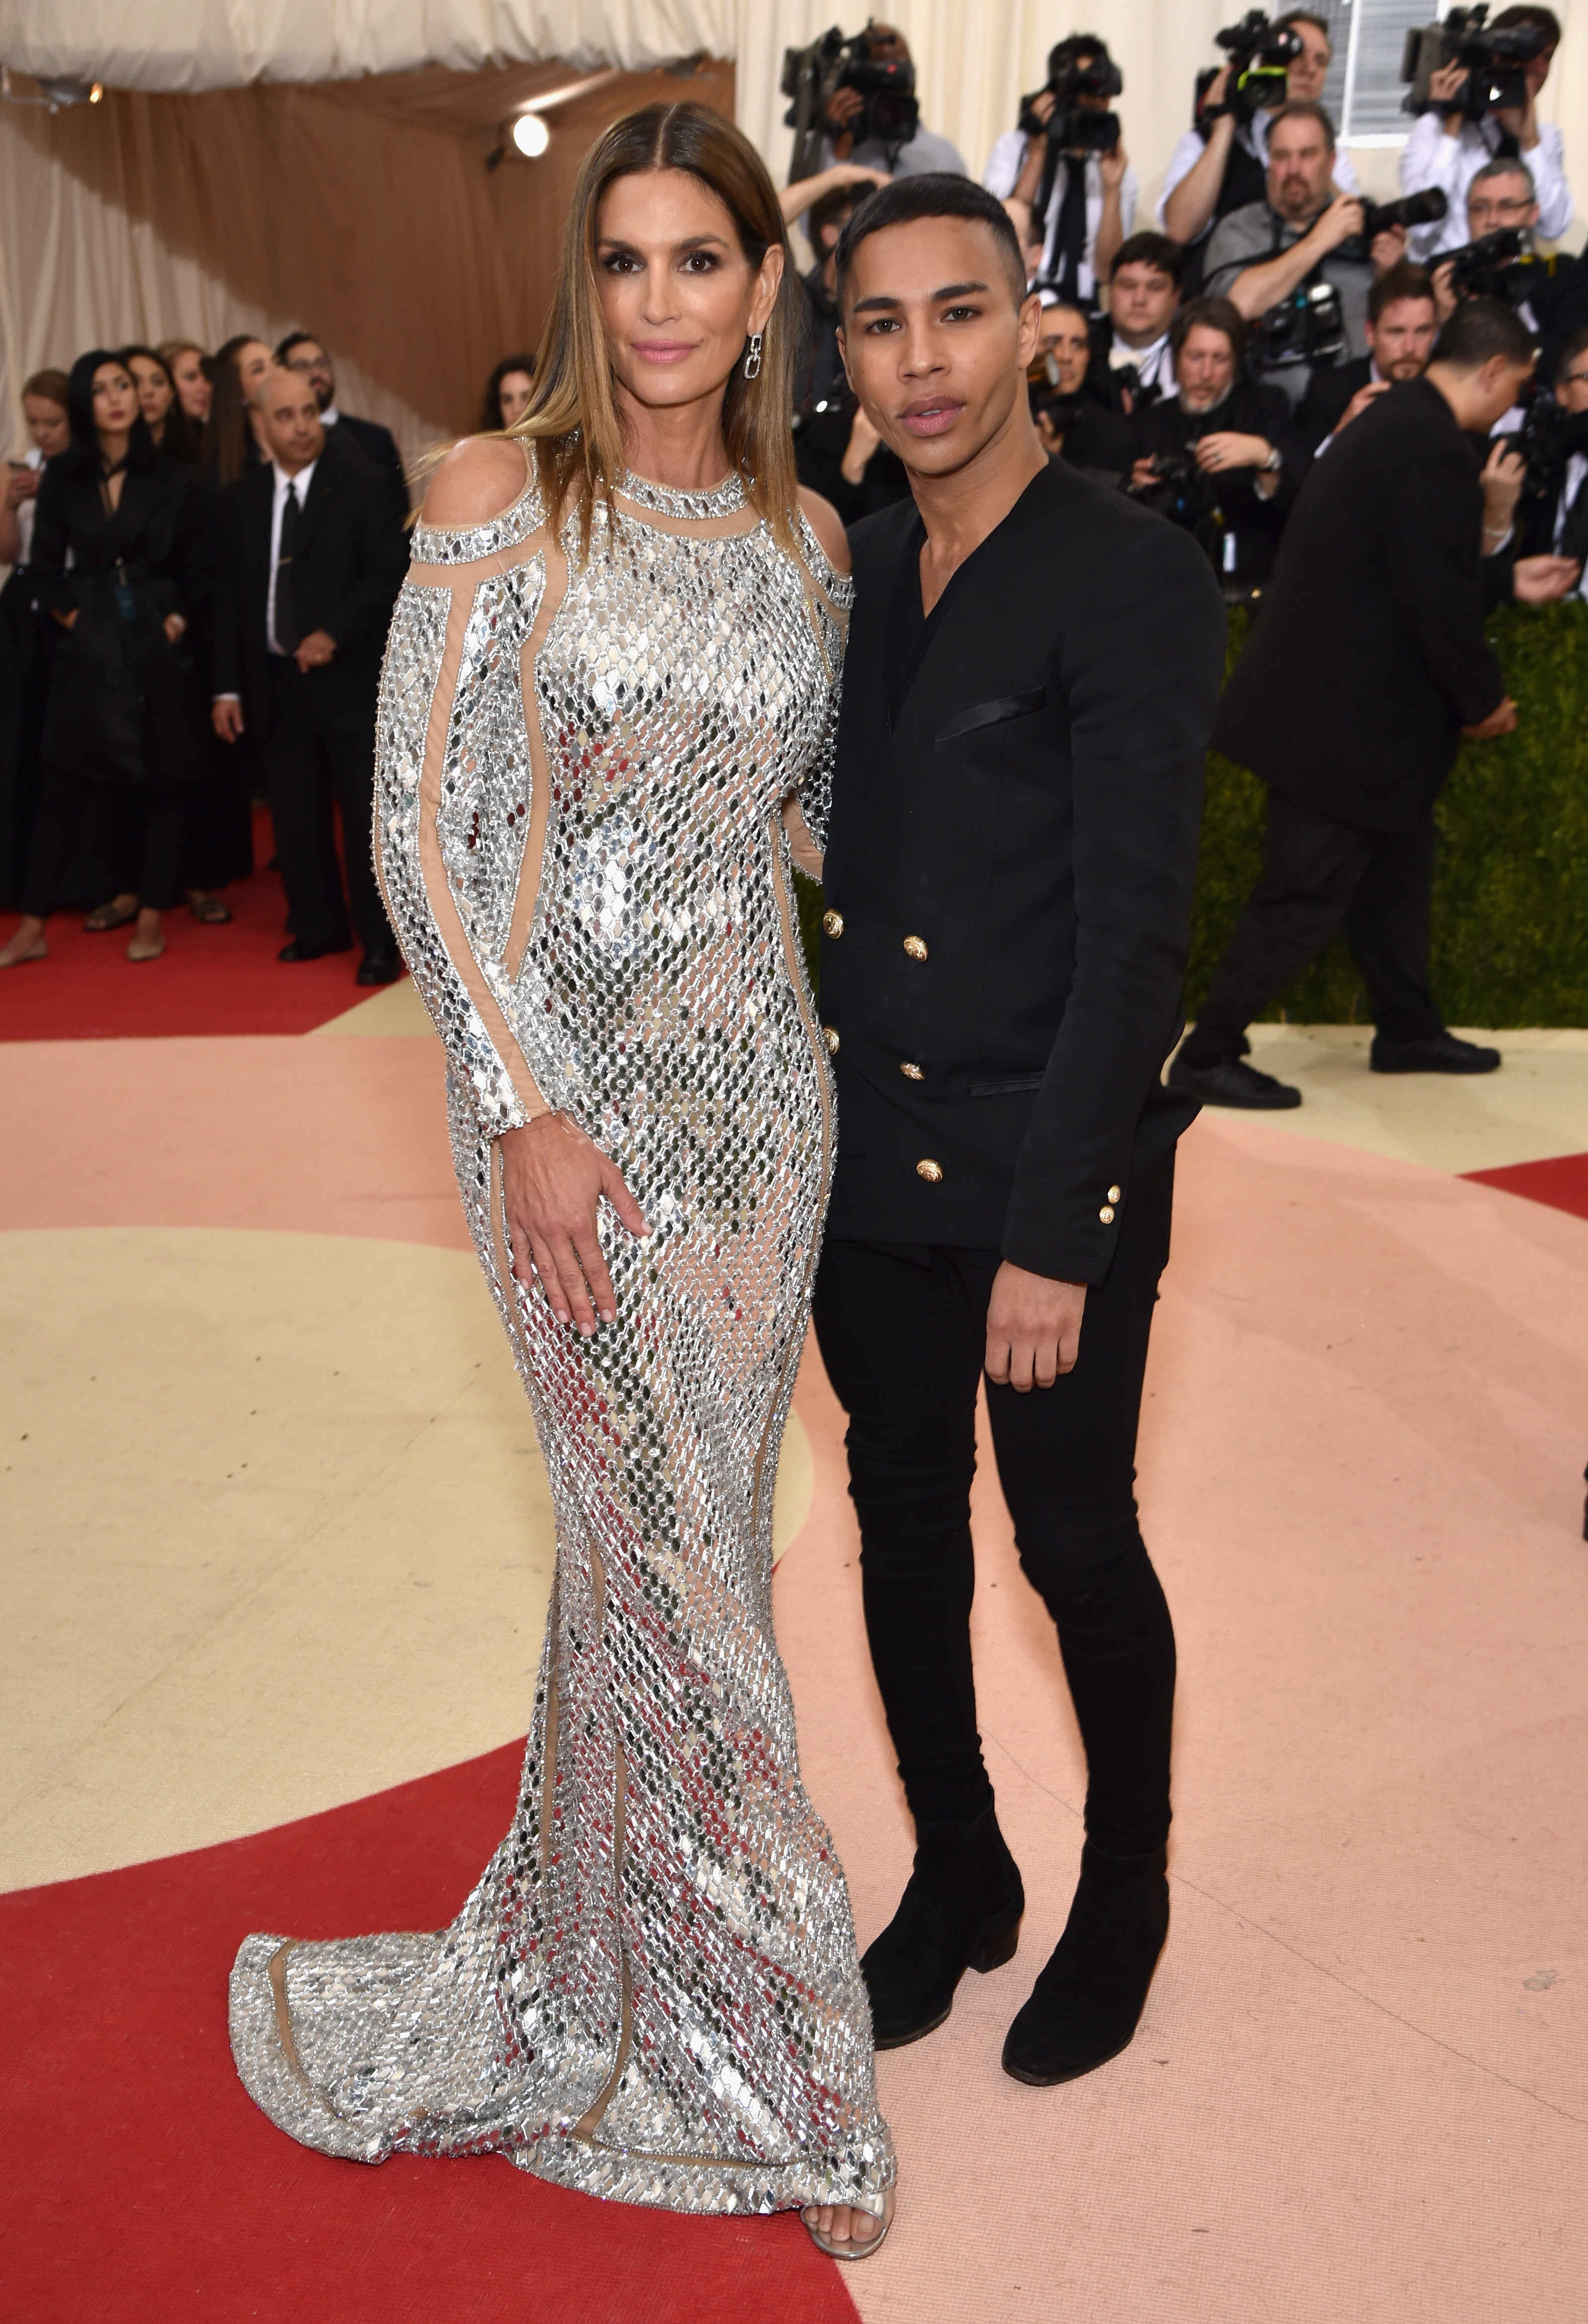 Cindy Crawford in Bailmain with Olivier Rousteing